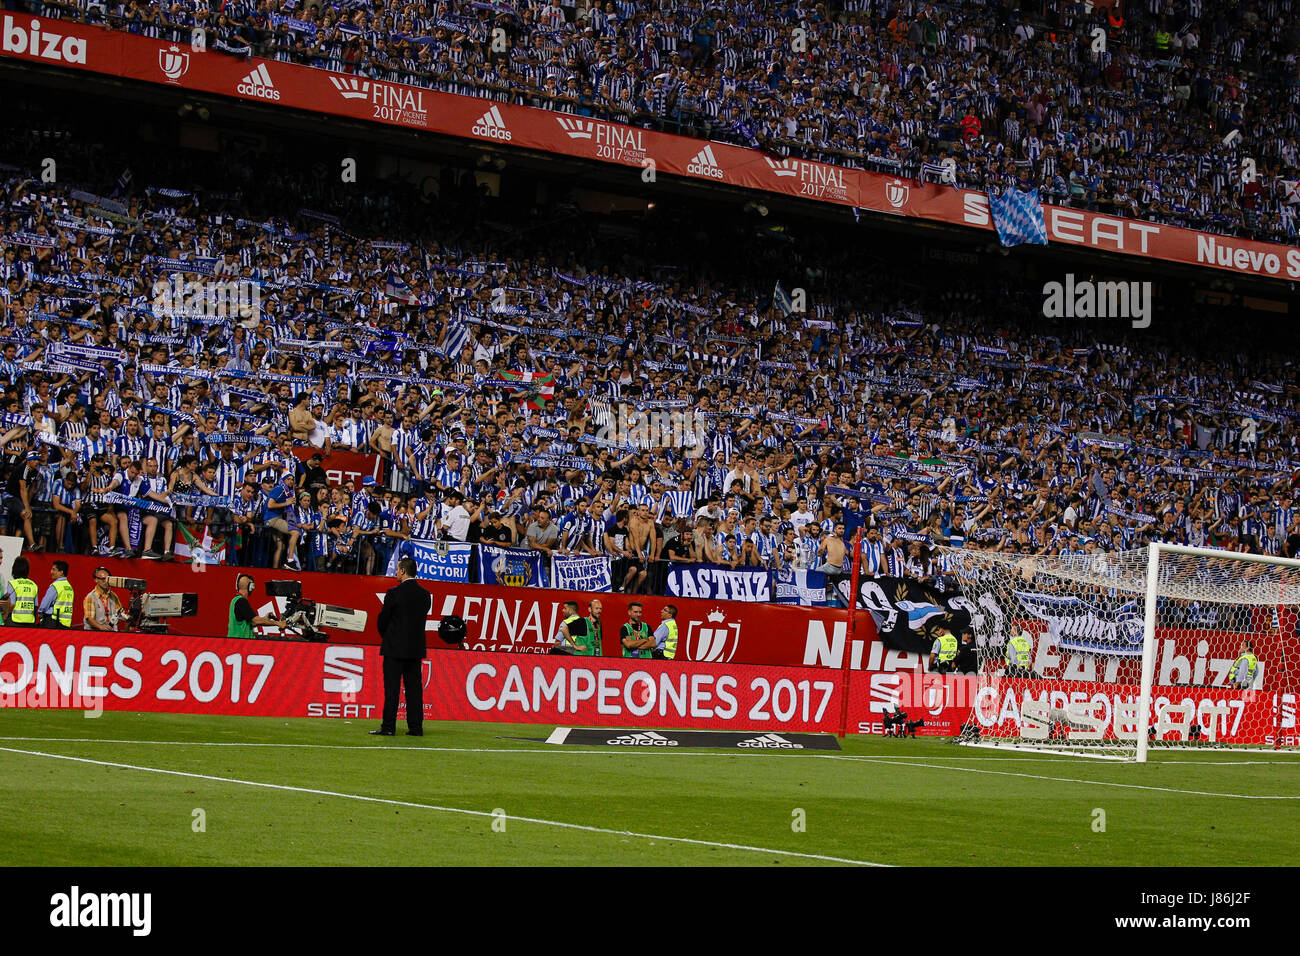 Copa del Rey between FC Barcelona vs Deportivo Alaves at the Vicente Calderon stadium in Madrid, Spain, May 27, - Stock Image